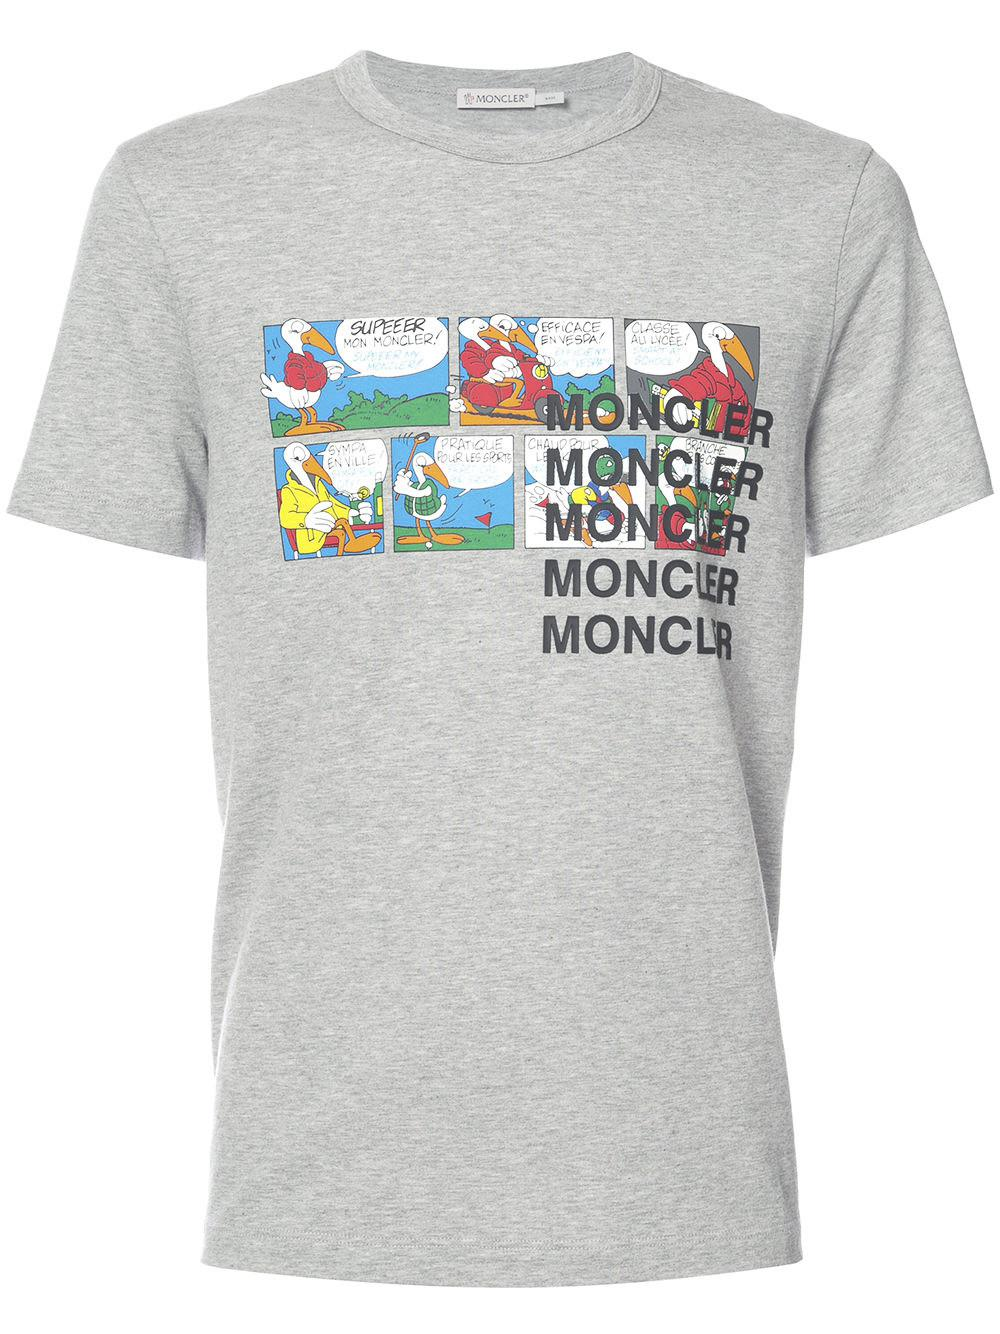 60e69bc0d7ec Lyst - Moncler Cartoon Printed T-shirt for Men - Save 50%